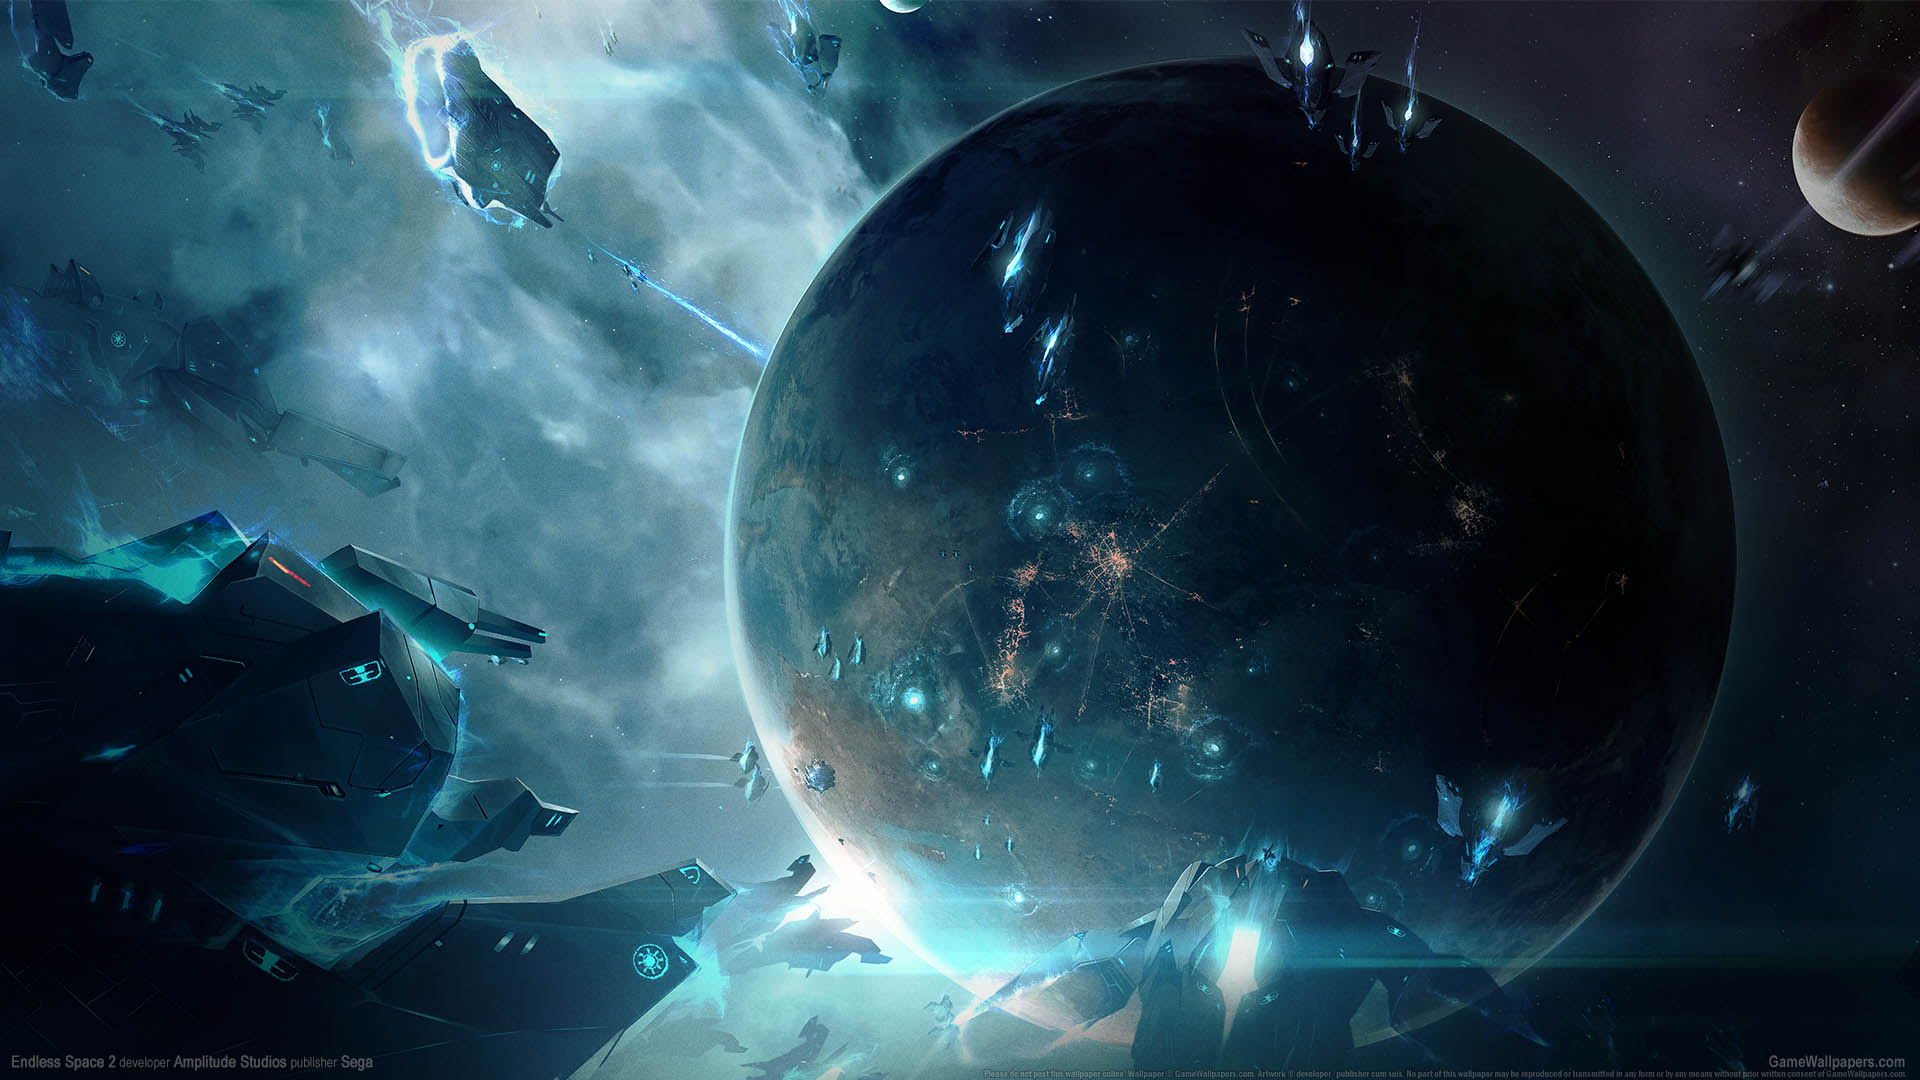 Endless Space 2 Hintergrundbild 04 1920x1080